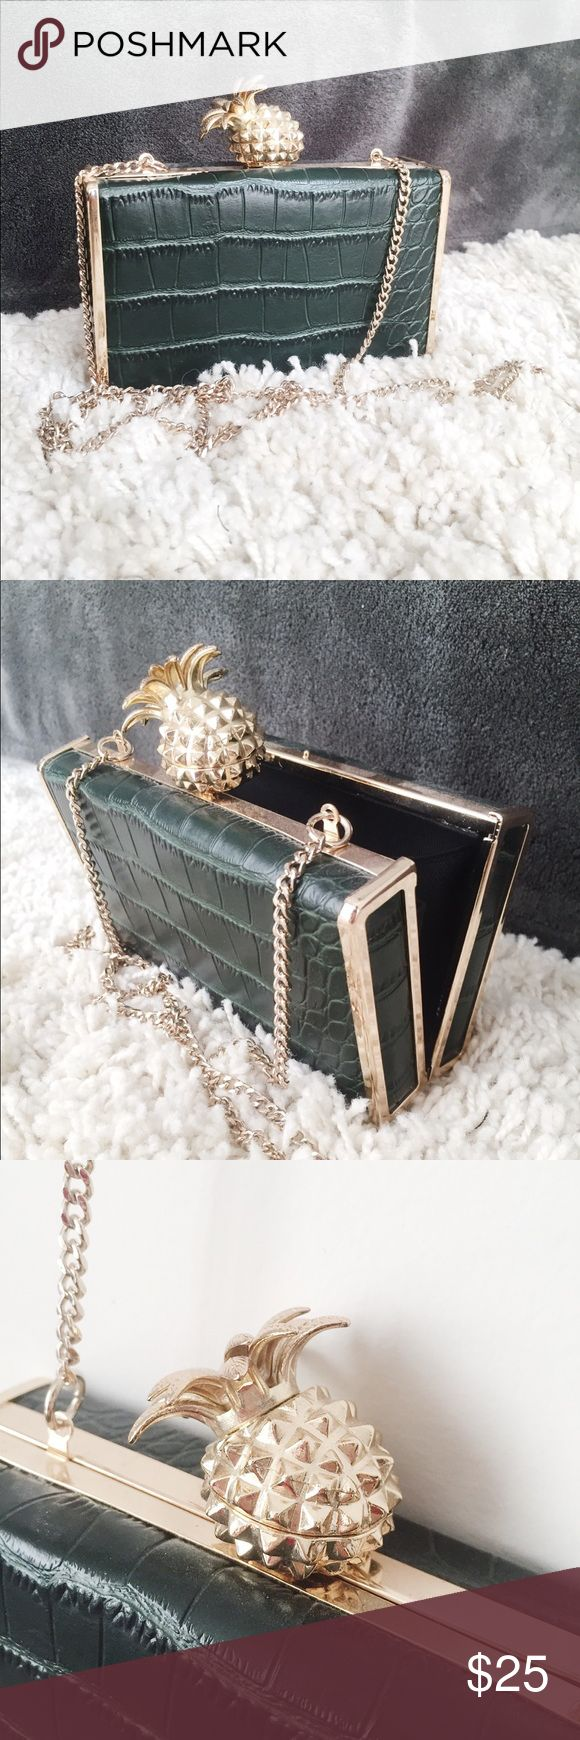 """Zara pineapple leather clutch Mini leather clutch with a golden pineapple detail that add a little elegant pop to your outfit.   6""""W x 3.5""""H x 2"""" D Zara Bags Clutches & Wristlets"""